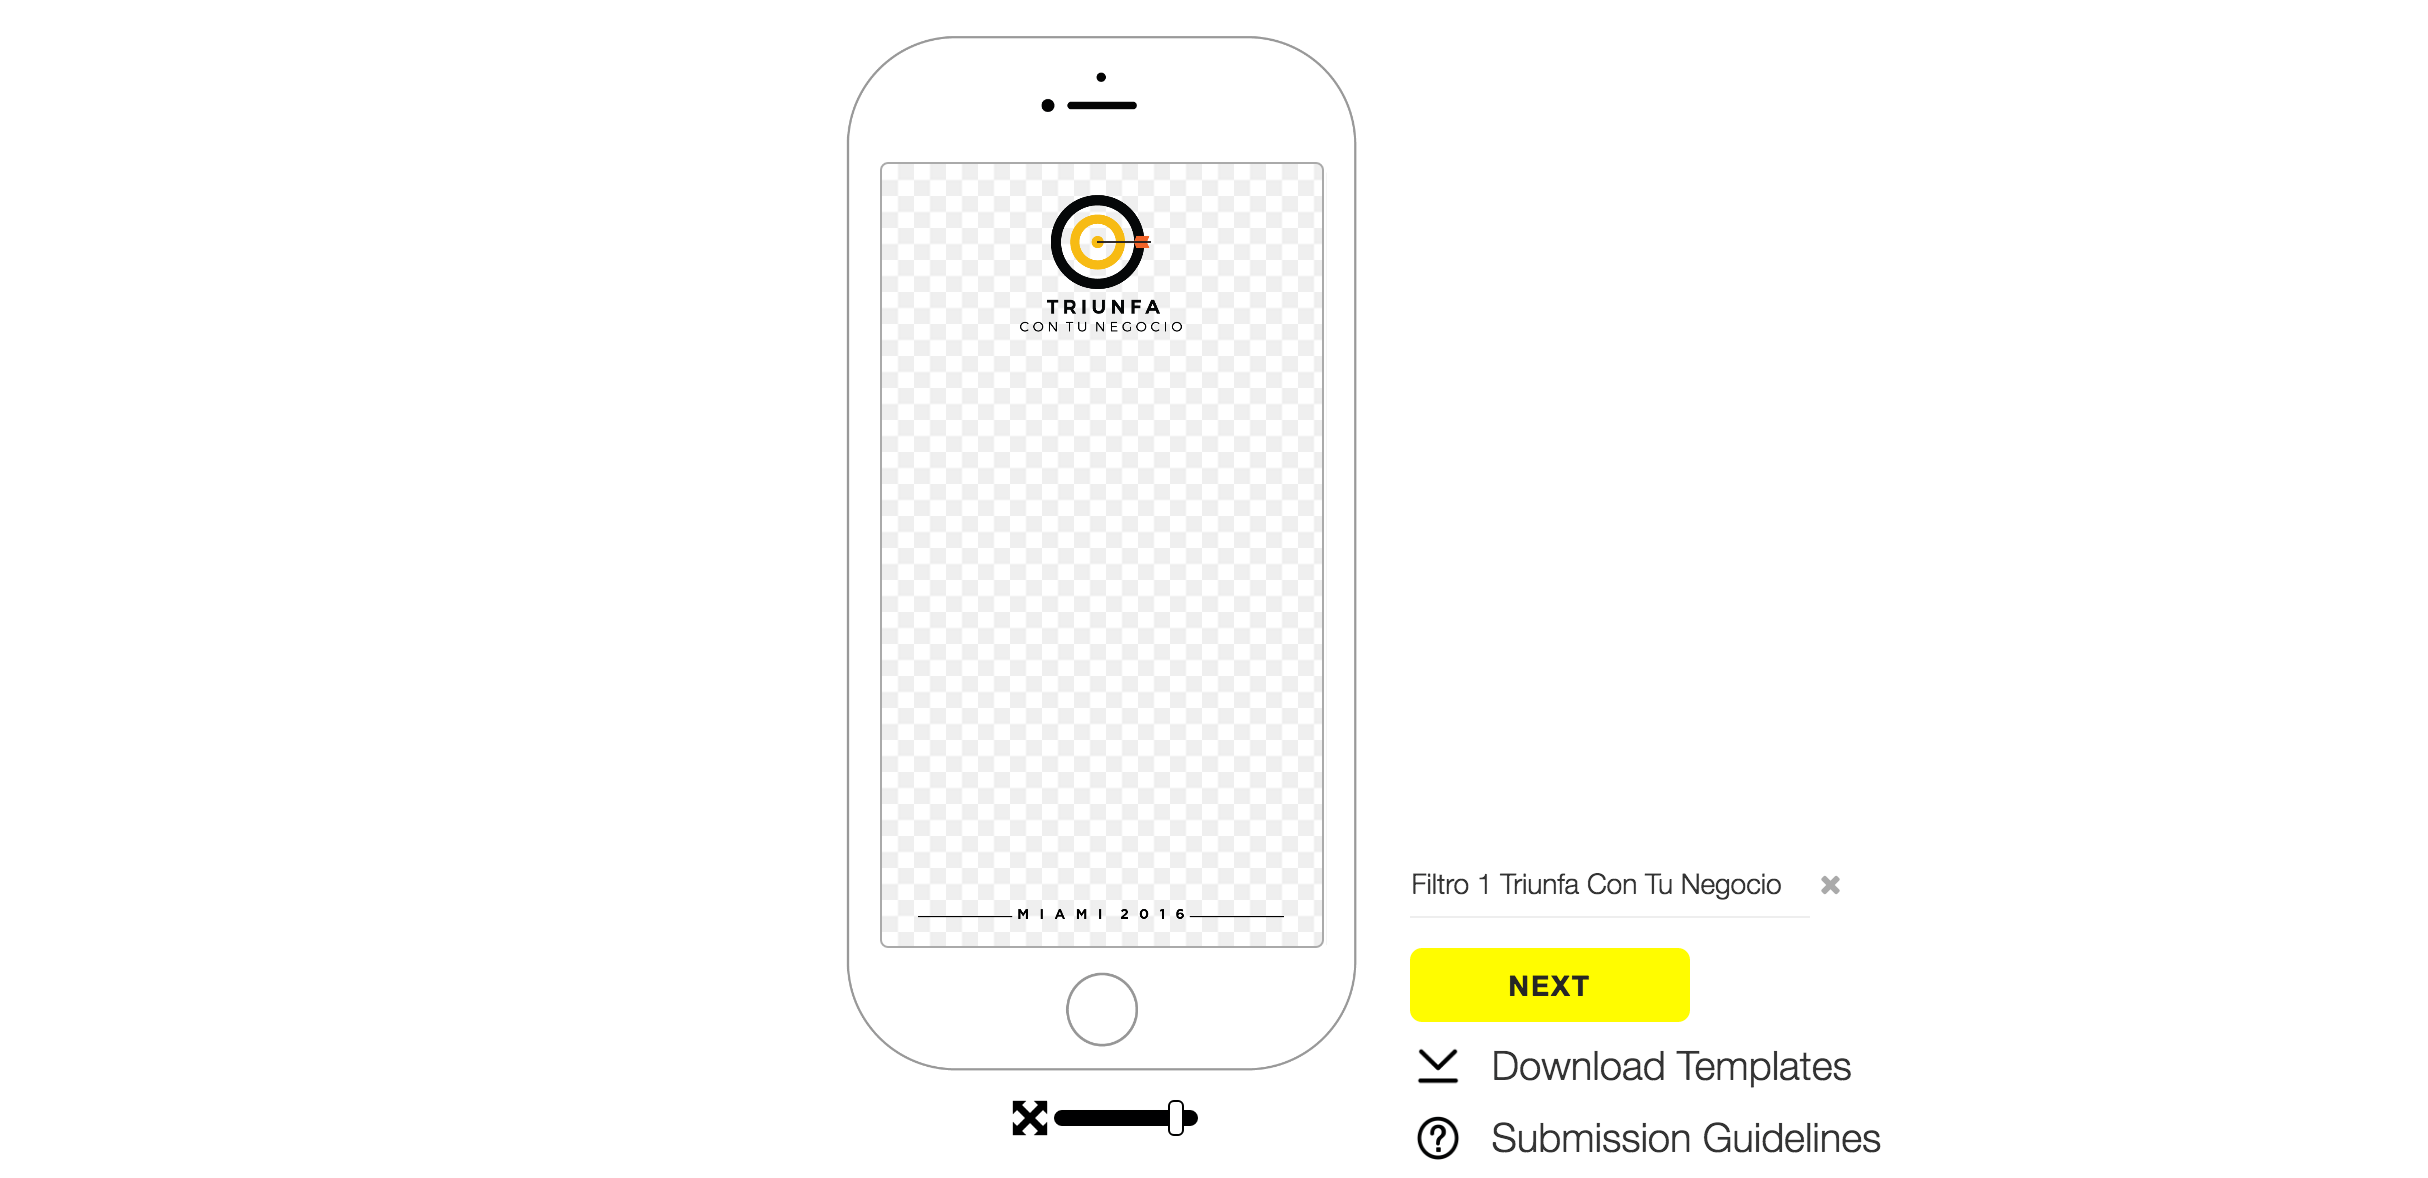 Guide to create a personalized geofilter on Snapchat.